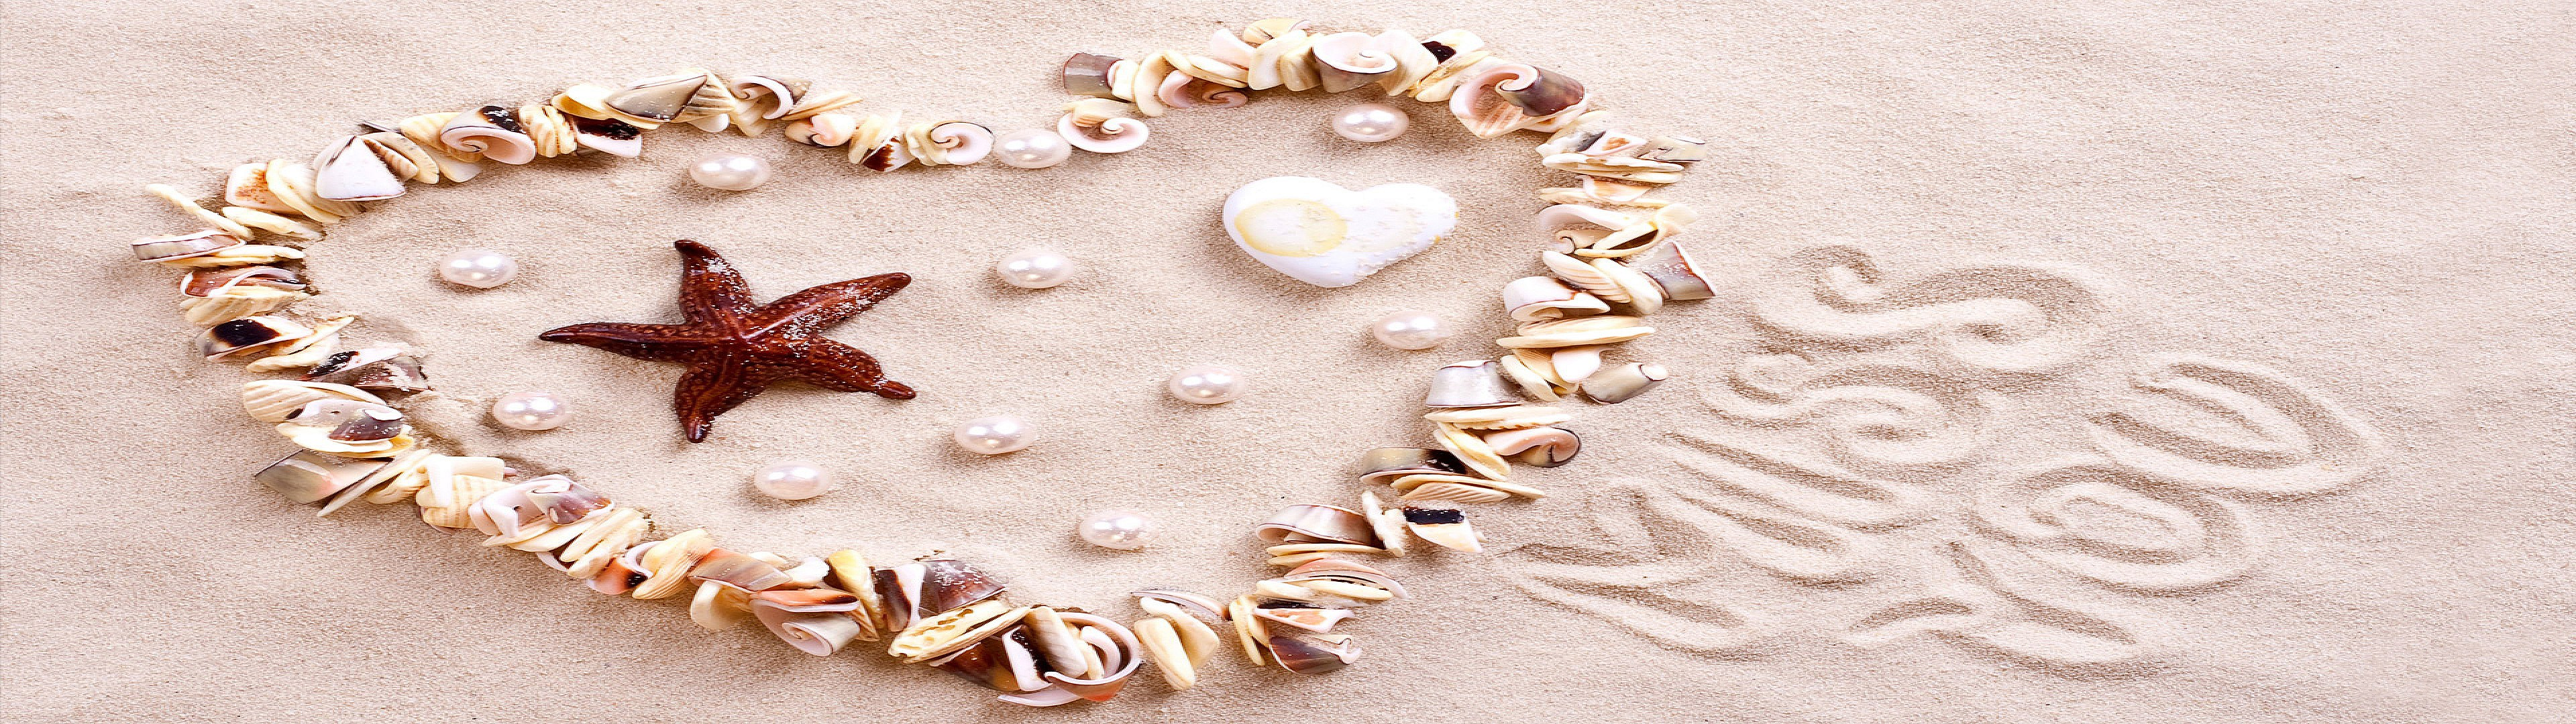 The heart of shells